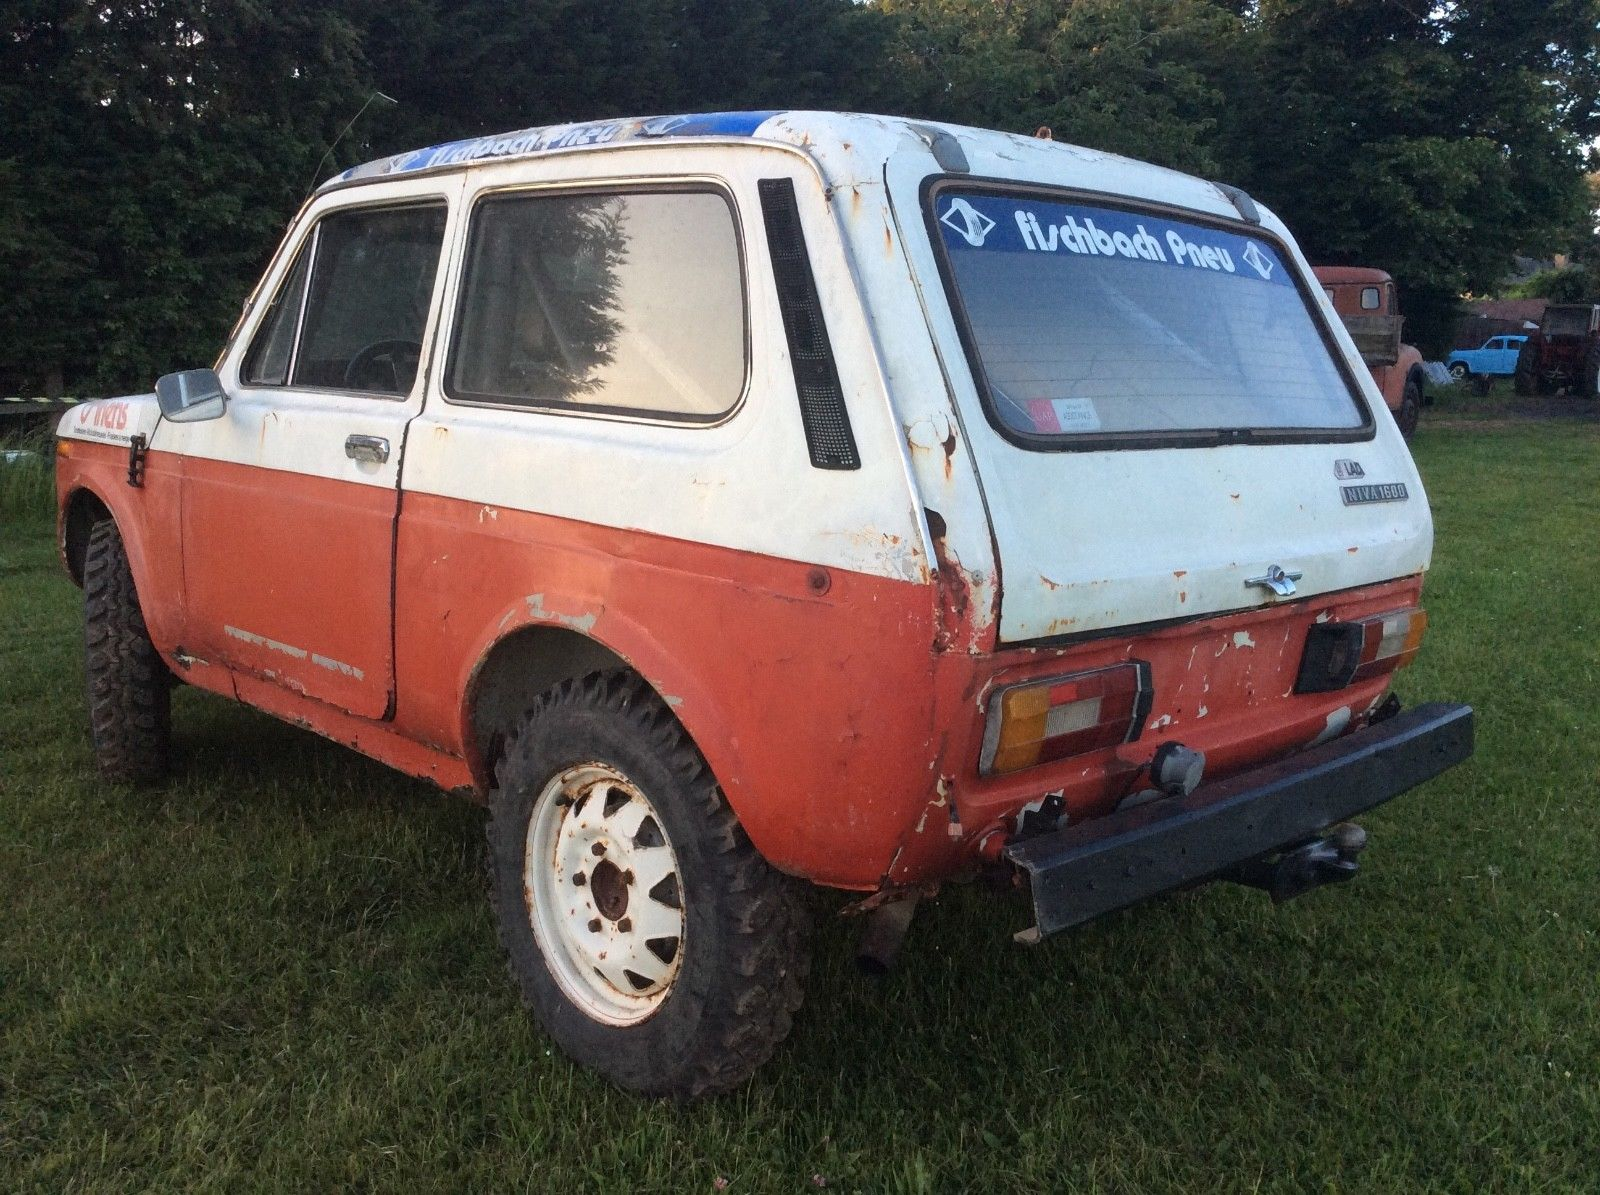 Uk Classic Cars On Twitter Ebay Lada Niva Lhd 4x4 Retro Off Road Competion Car Full Cage Fiat Twin Cam Engine Https T Co Ryqfsuq8qe